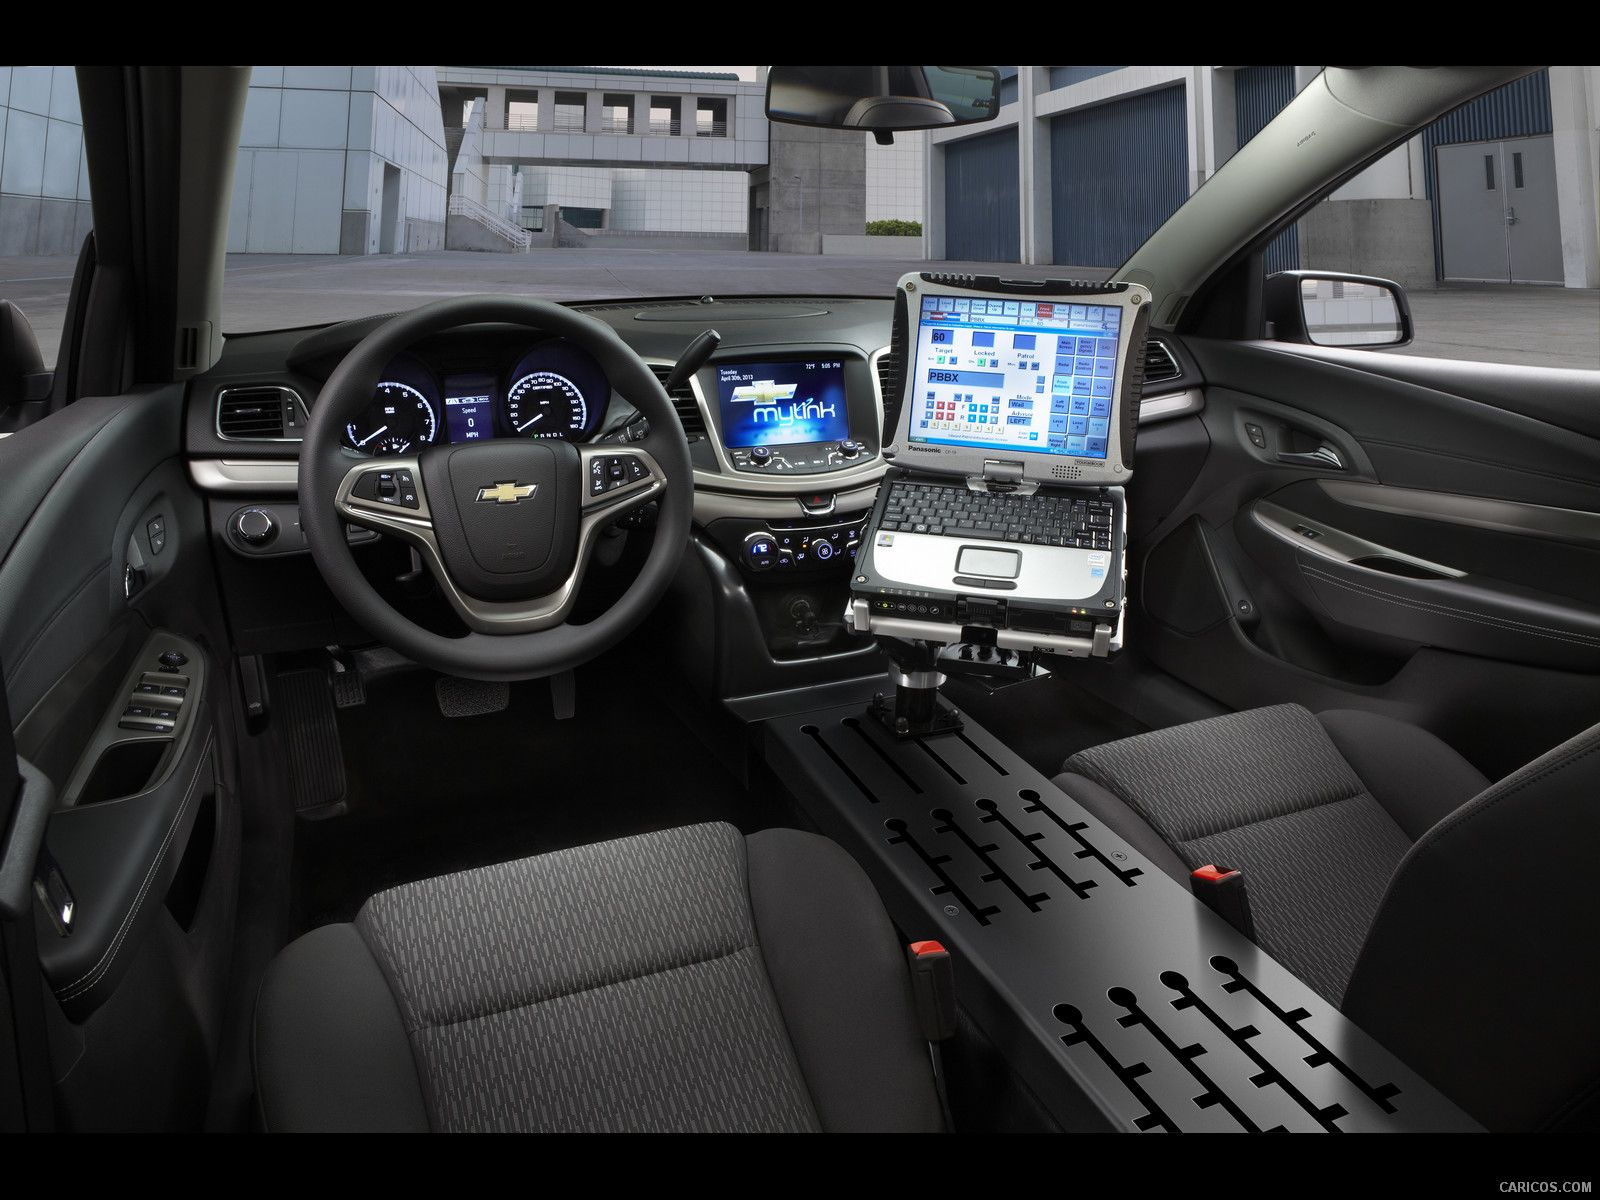 2014 Chevy Caprice Ppv Police Vehicle W Mounting Platform Console